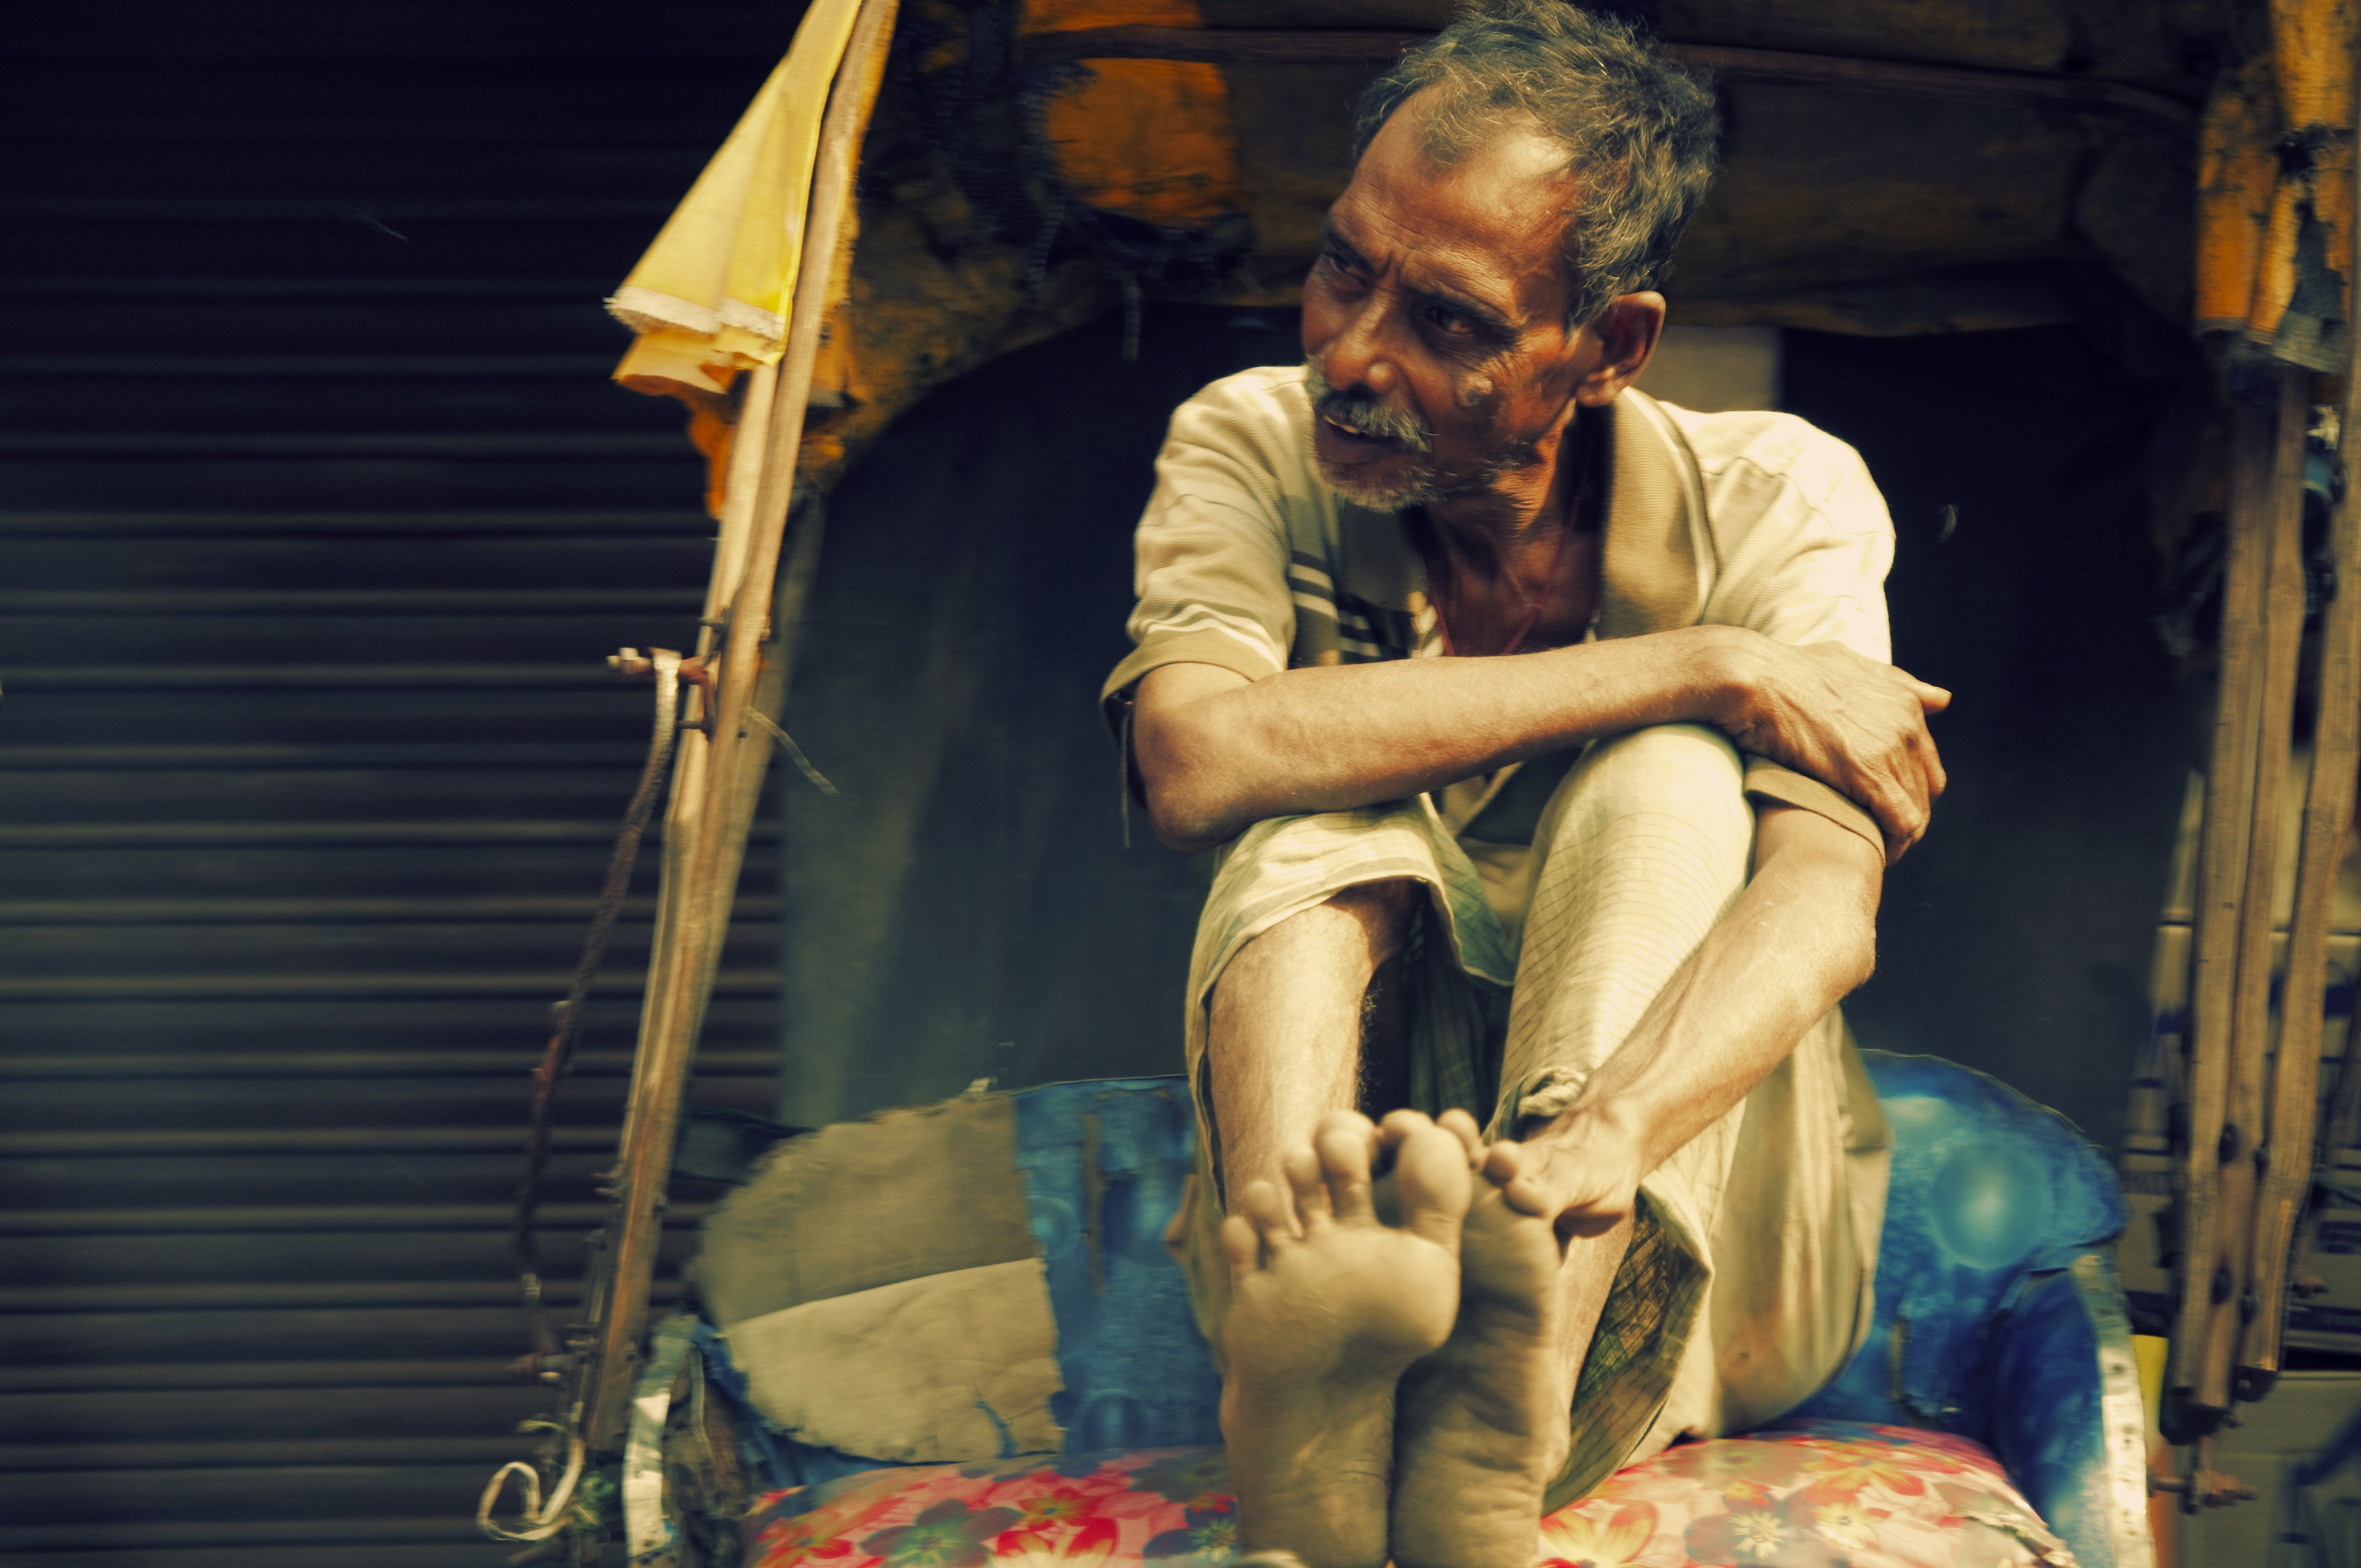 hunger in india